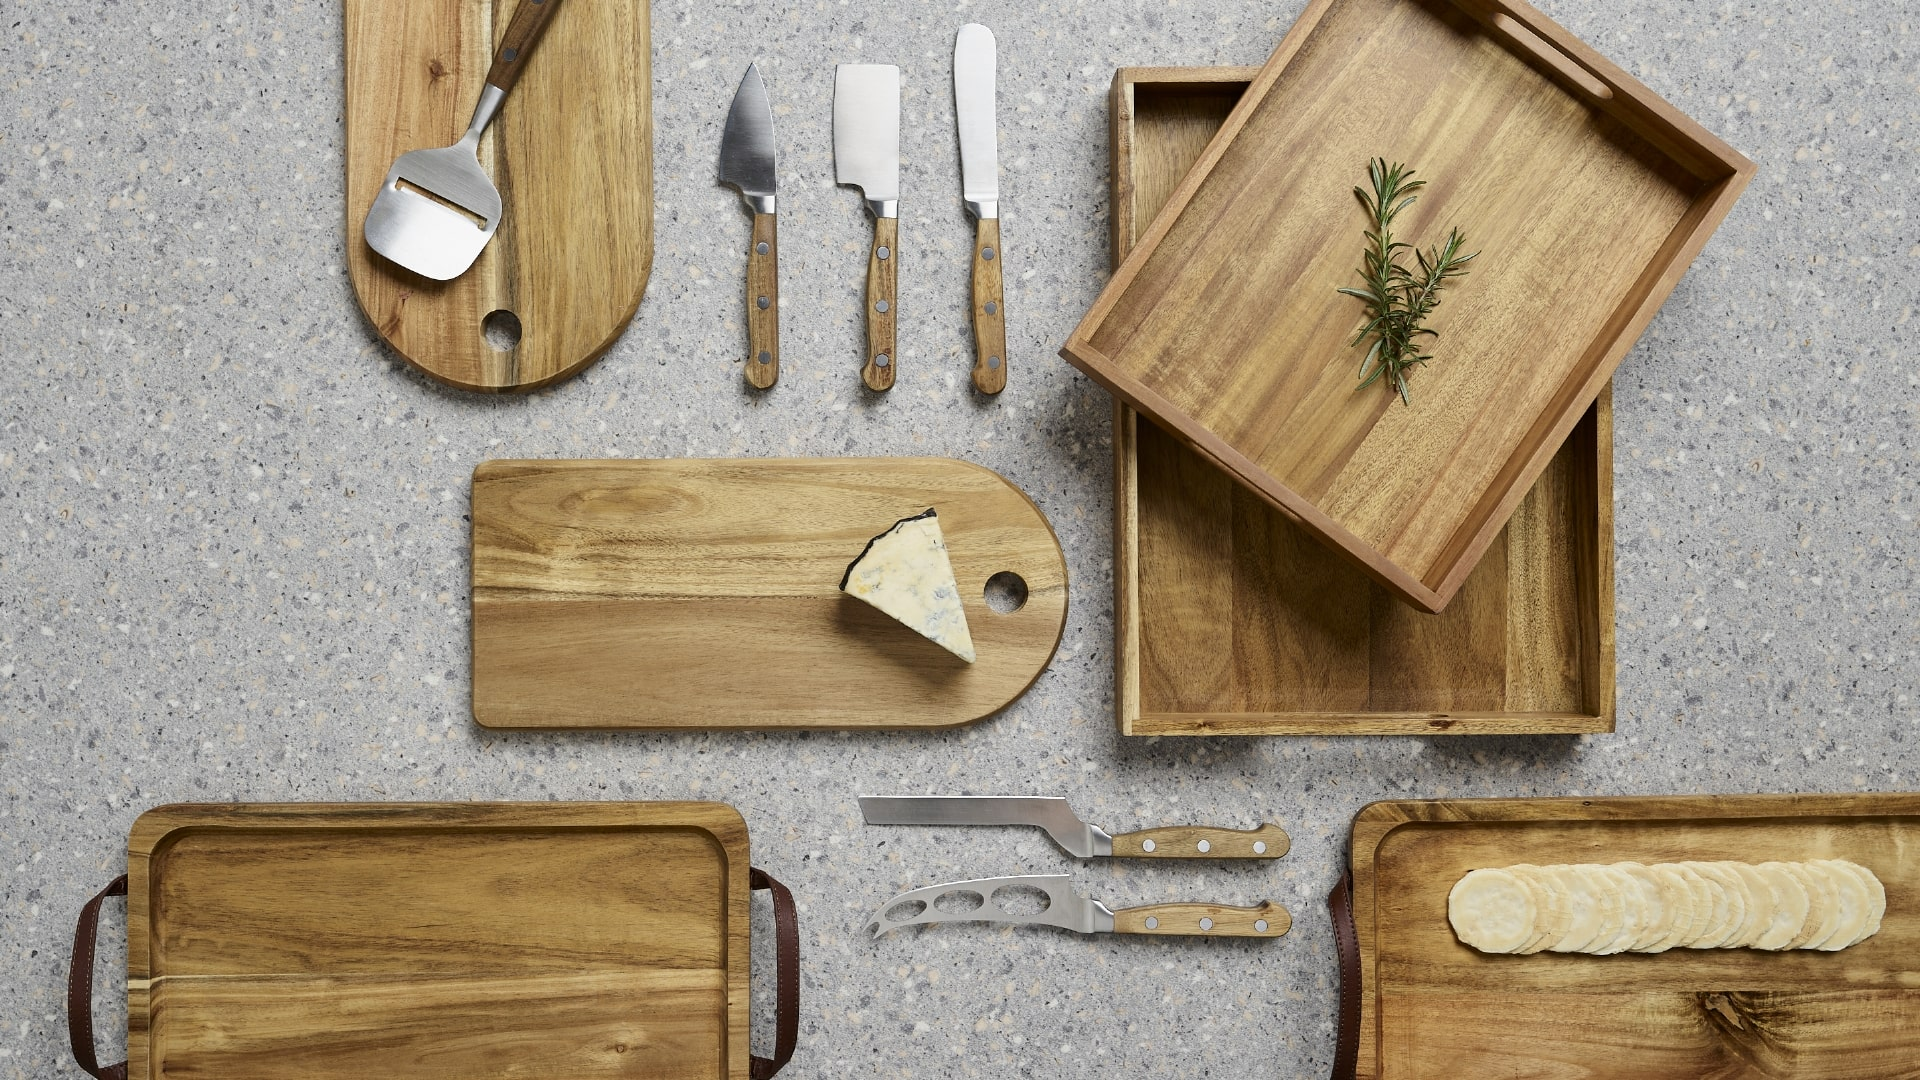 Great Tips For Caring & Maintaining Your Kitchen Knives